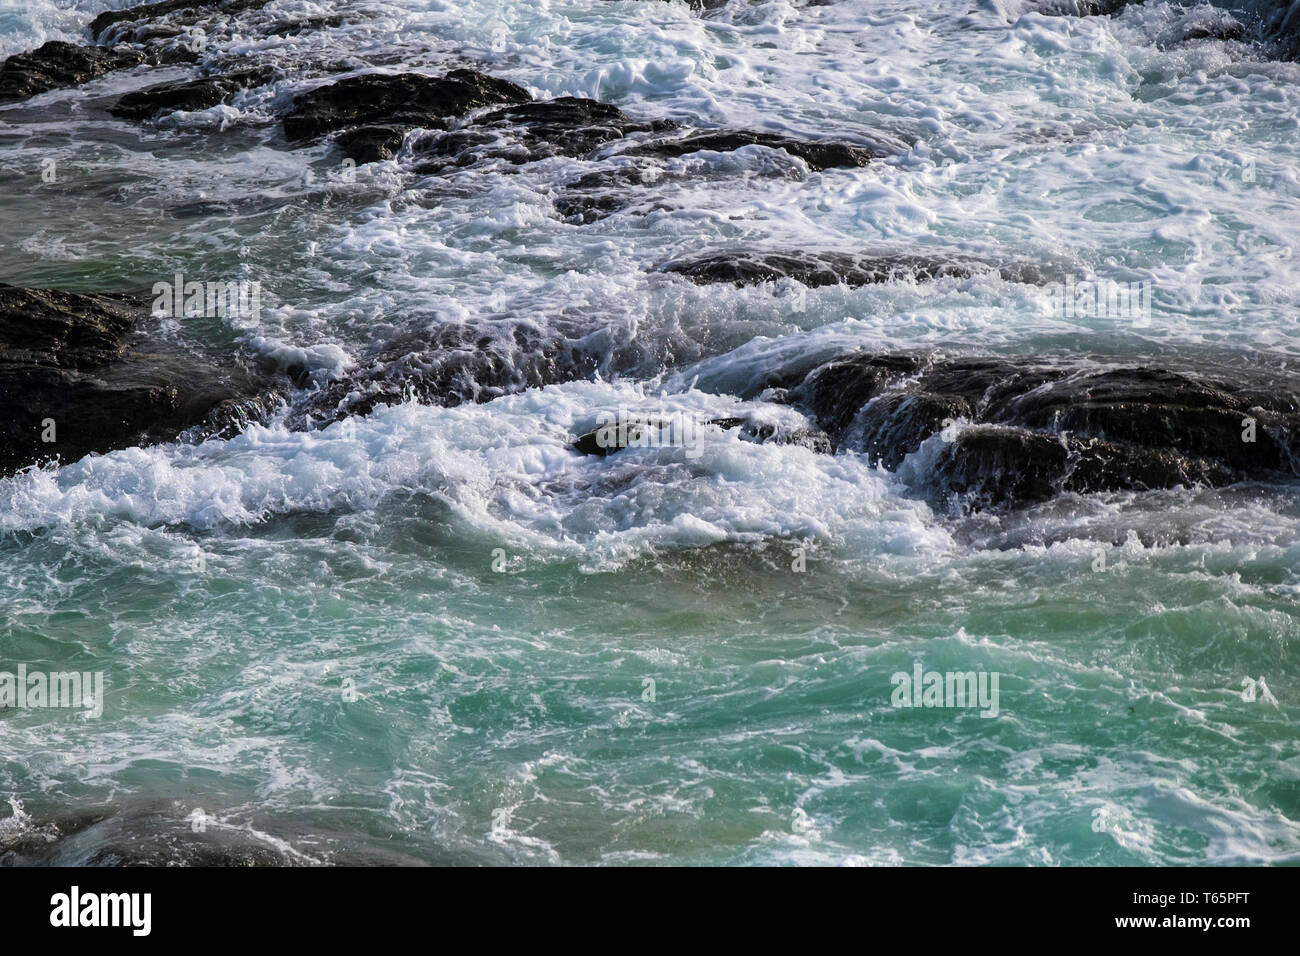 Sea swirling around and over rocks on the North Cornwall coast. - Stock Image